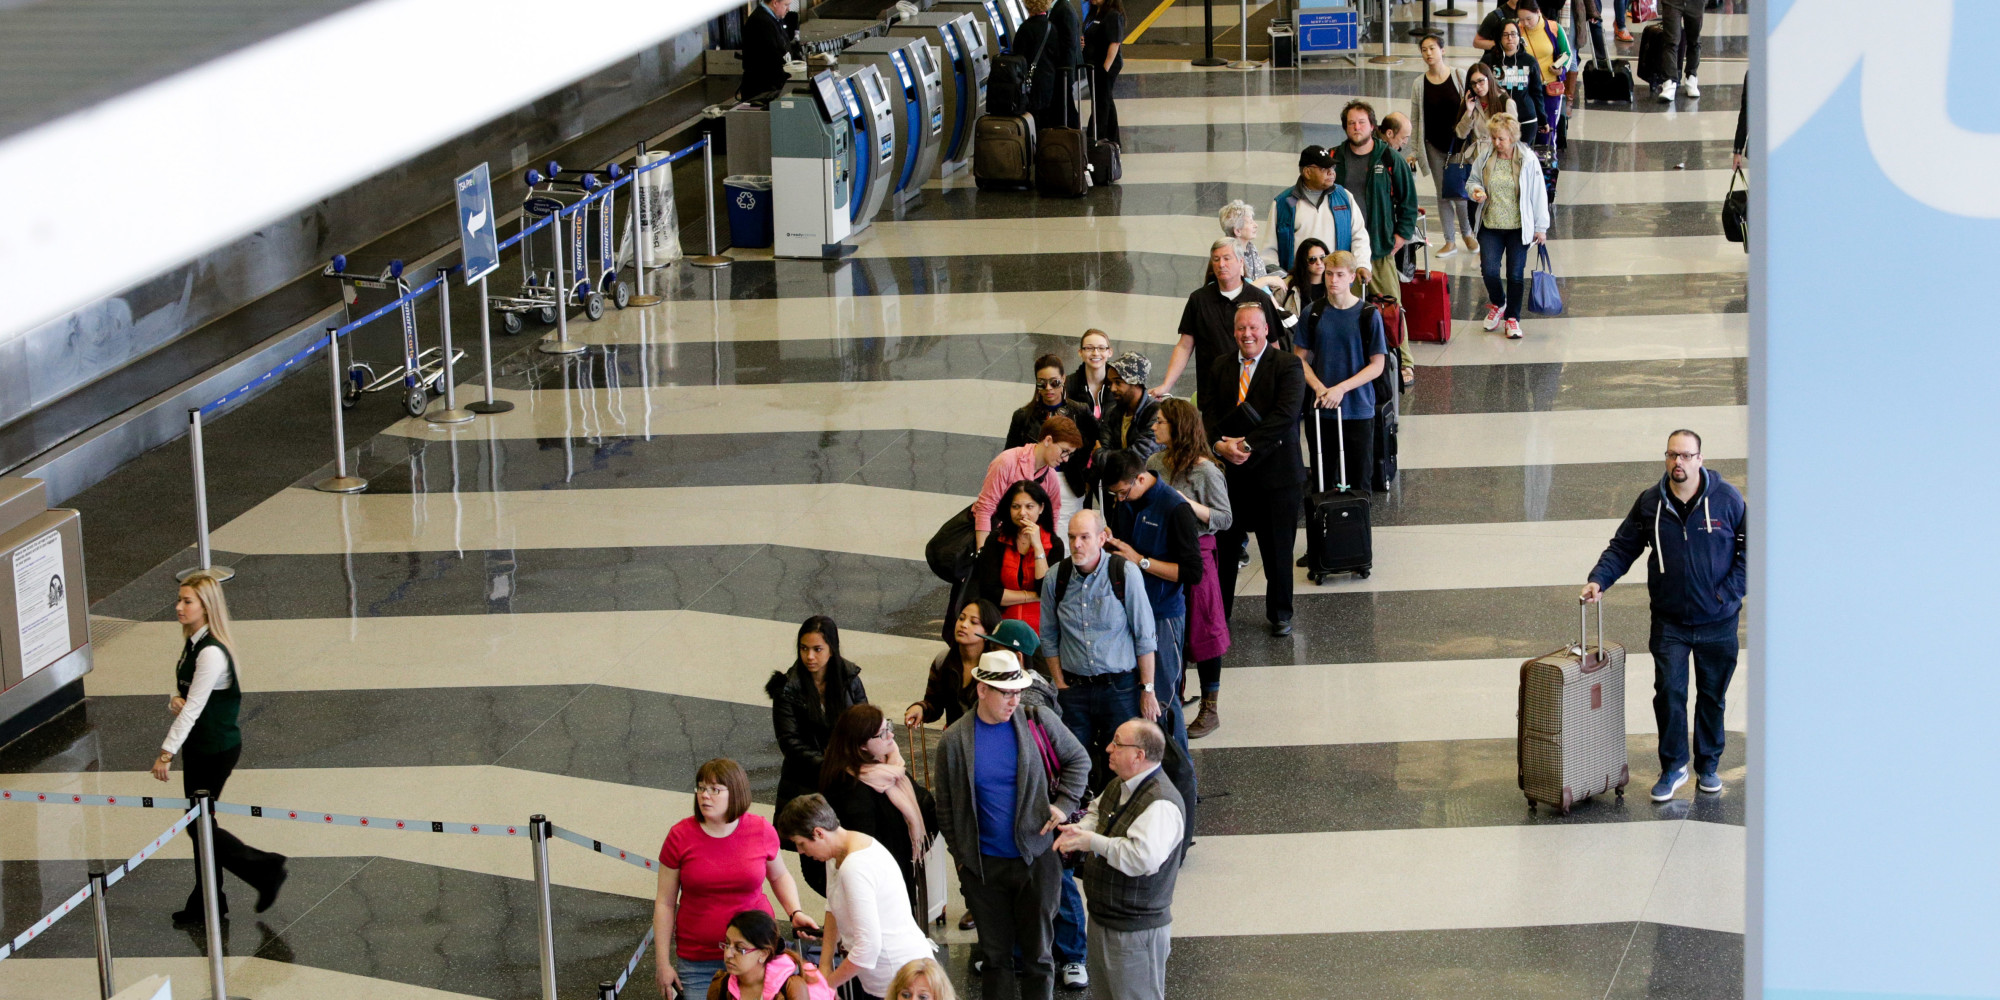 Misplaced Blame for the TSA's Long Line Problem